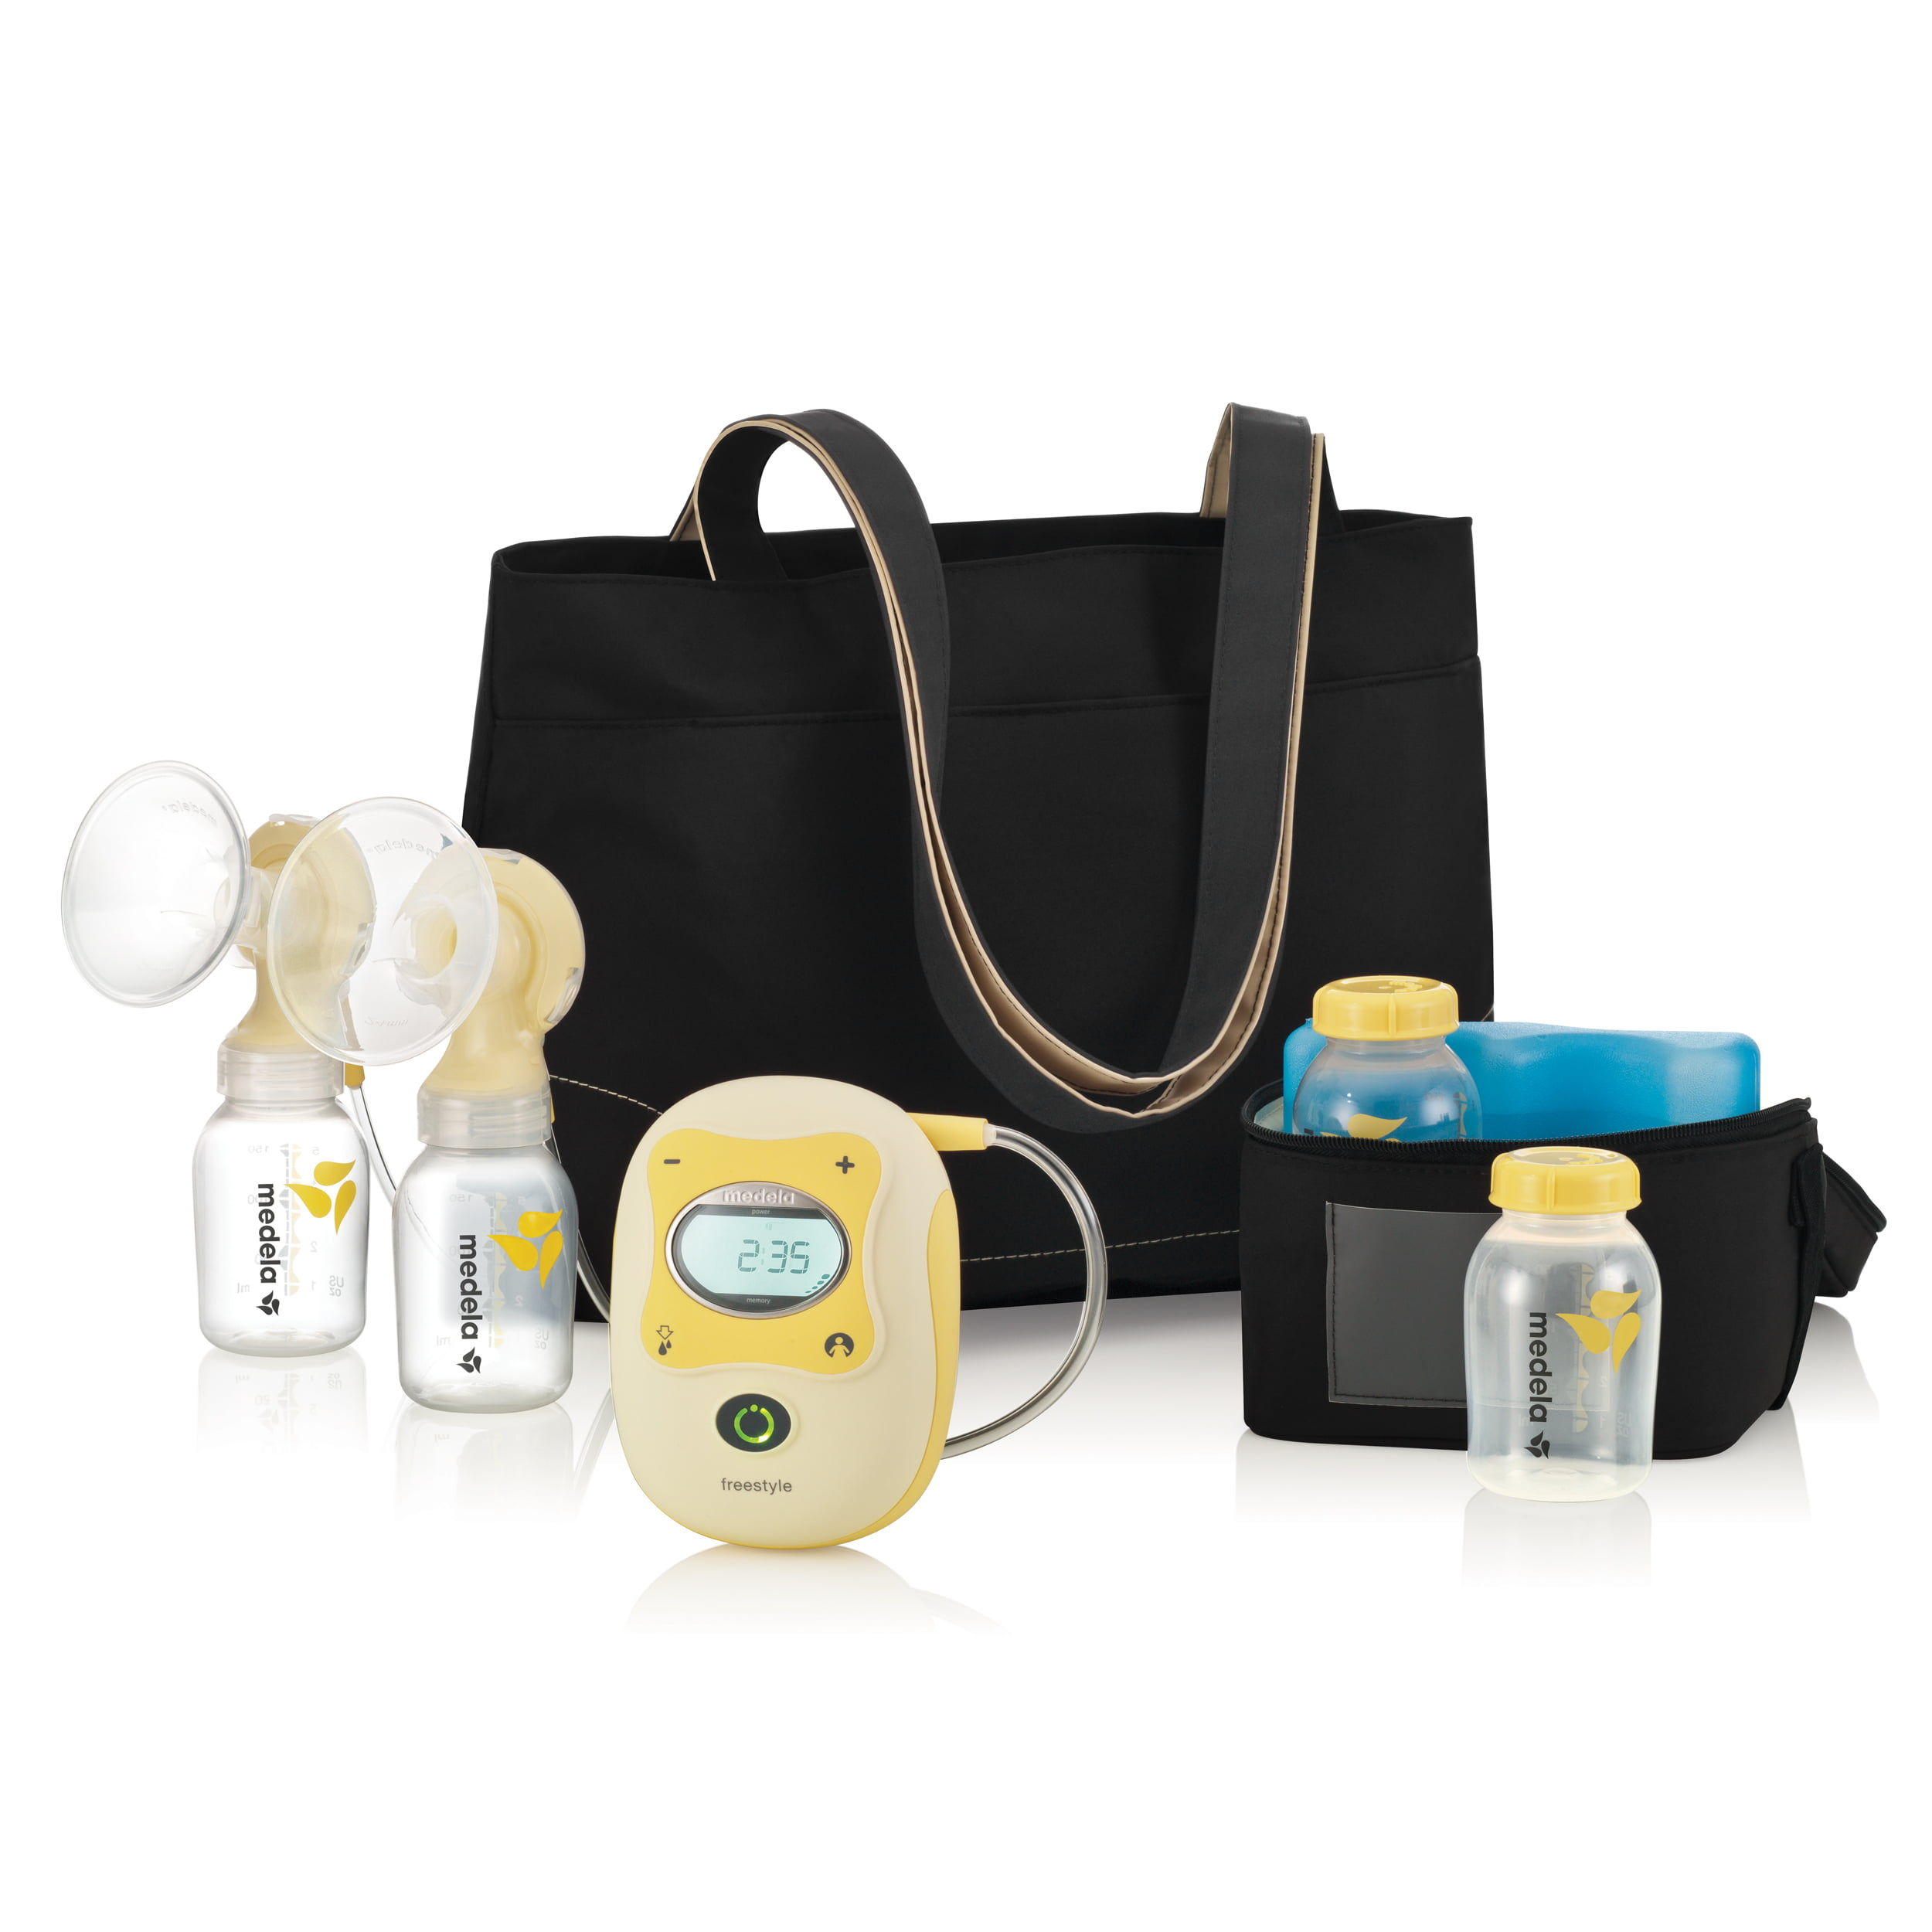 Medela Freestyle Portable Double Electric Breast Pump by Medela